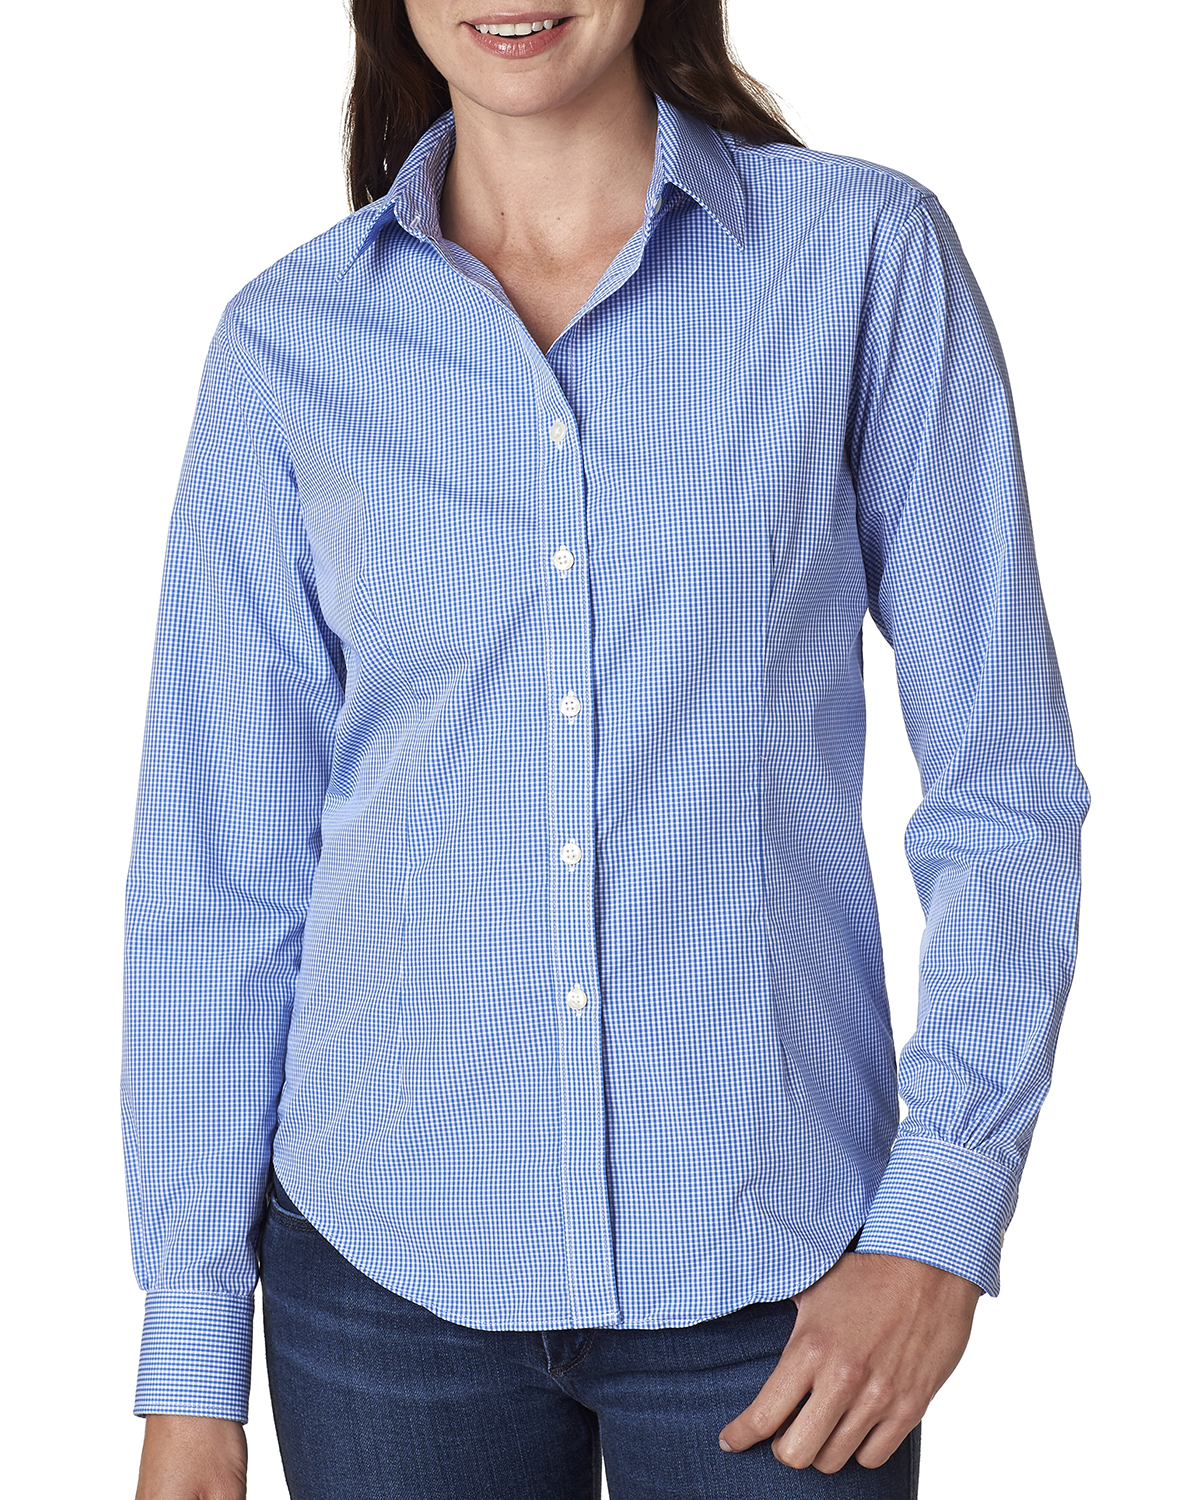 Van Heusen V0226 - Ladies' Long-Sleeve Yarn-Dyed Gingham Check Woven Shirt